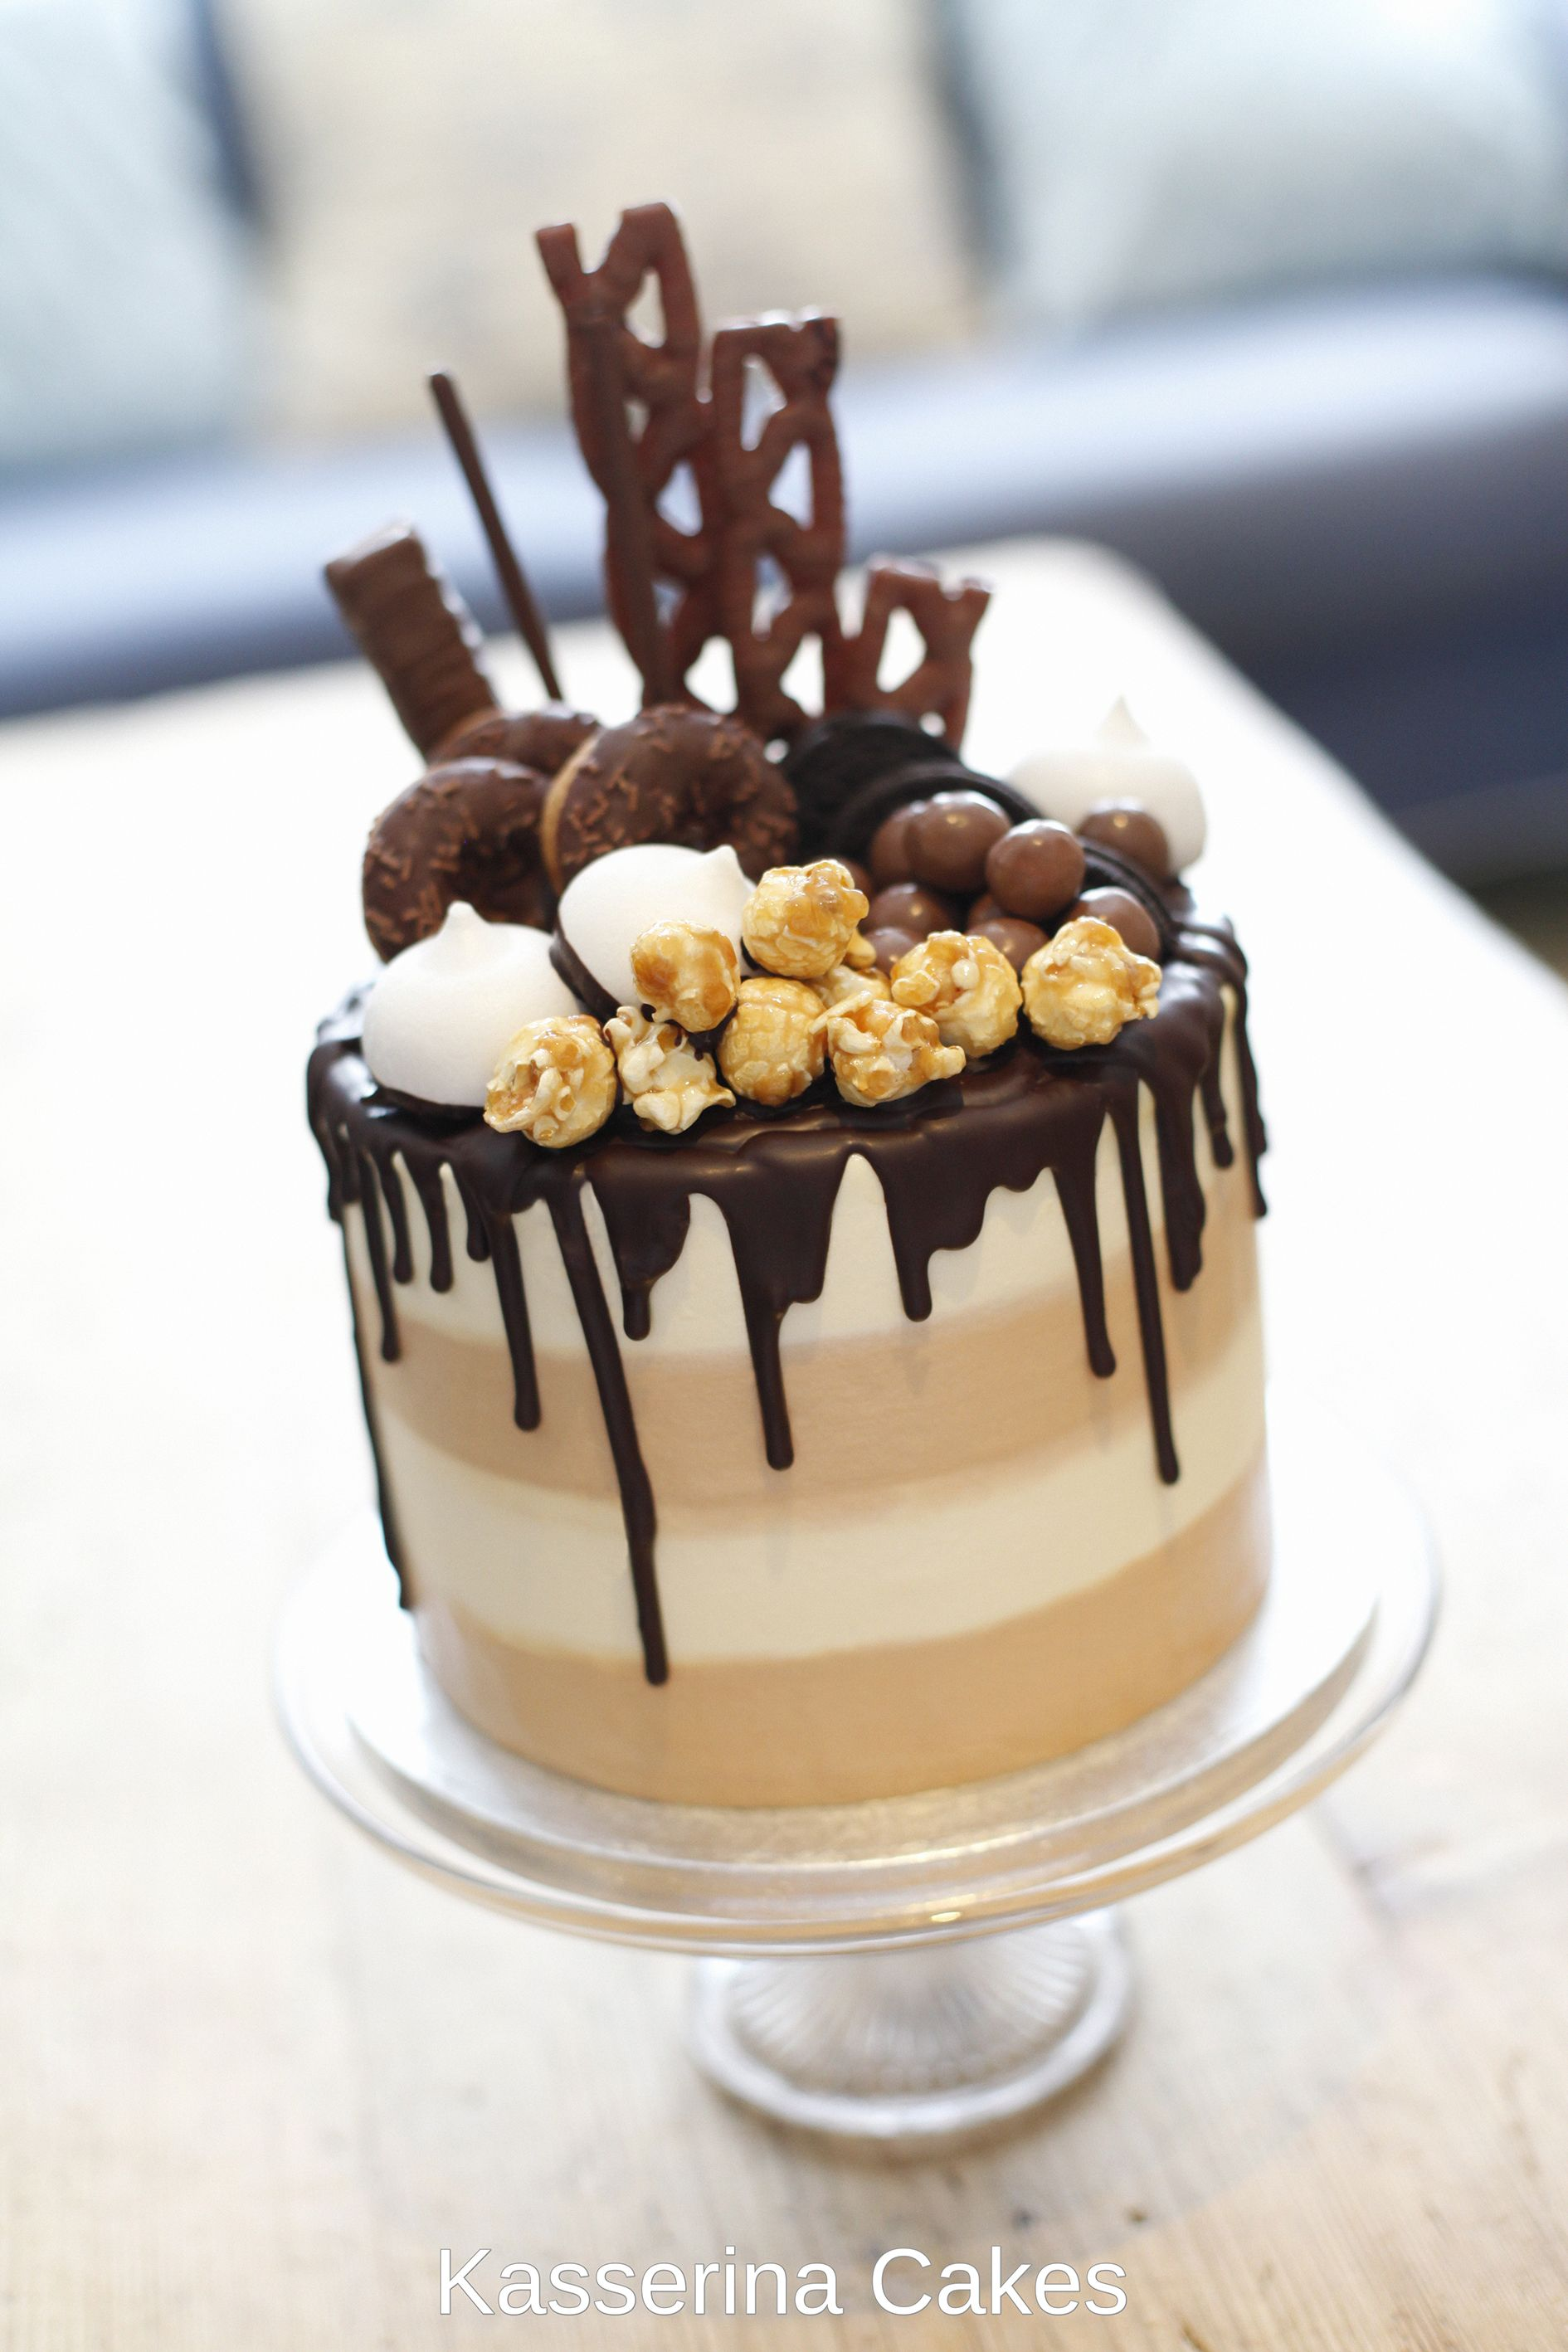 Cake Design Caramel : Chocolate and caramel candy cake by Kasserina Cakes in ...